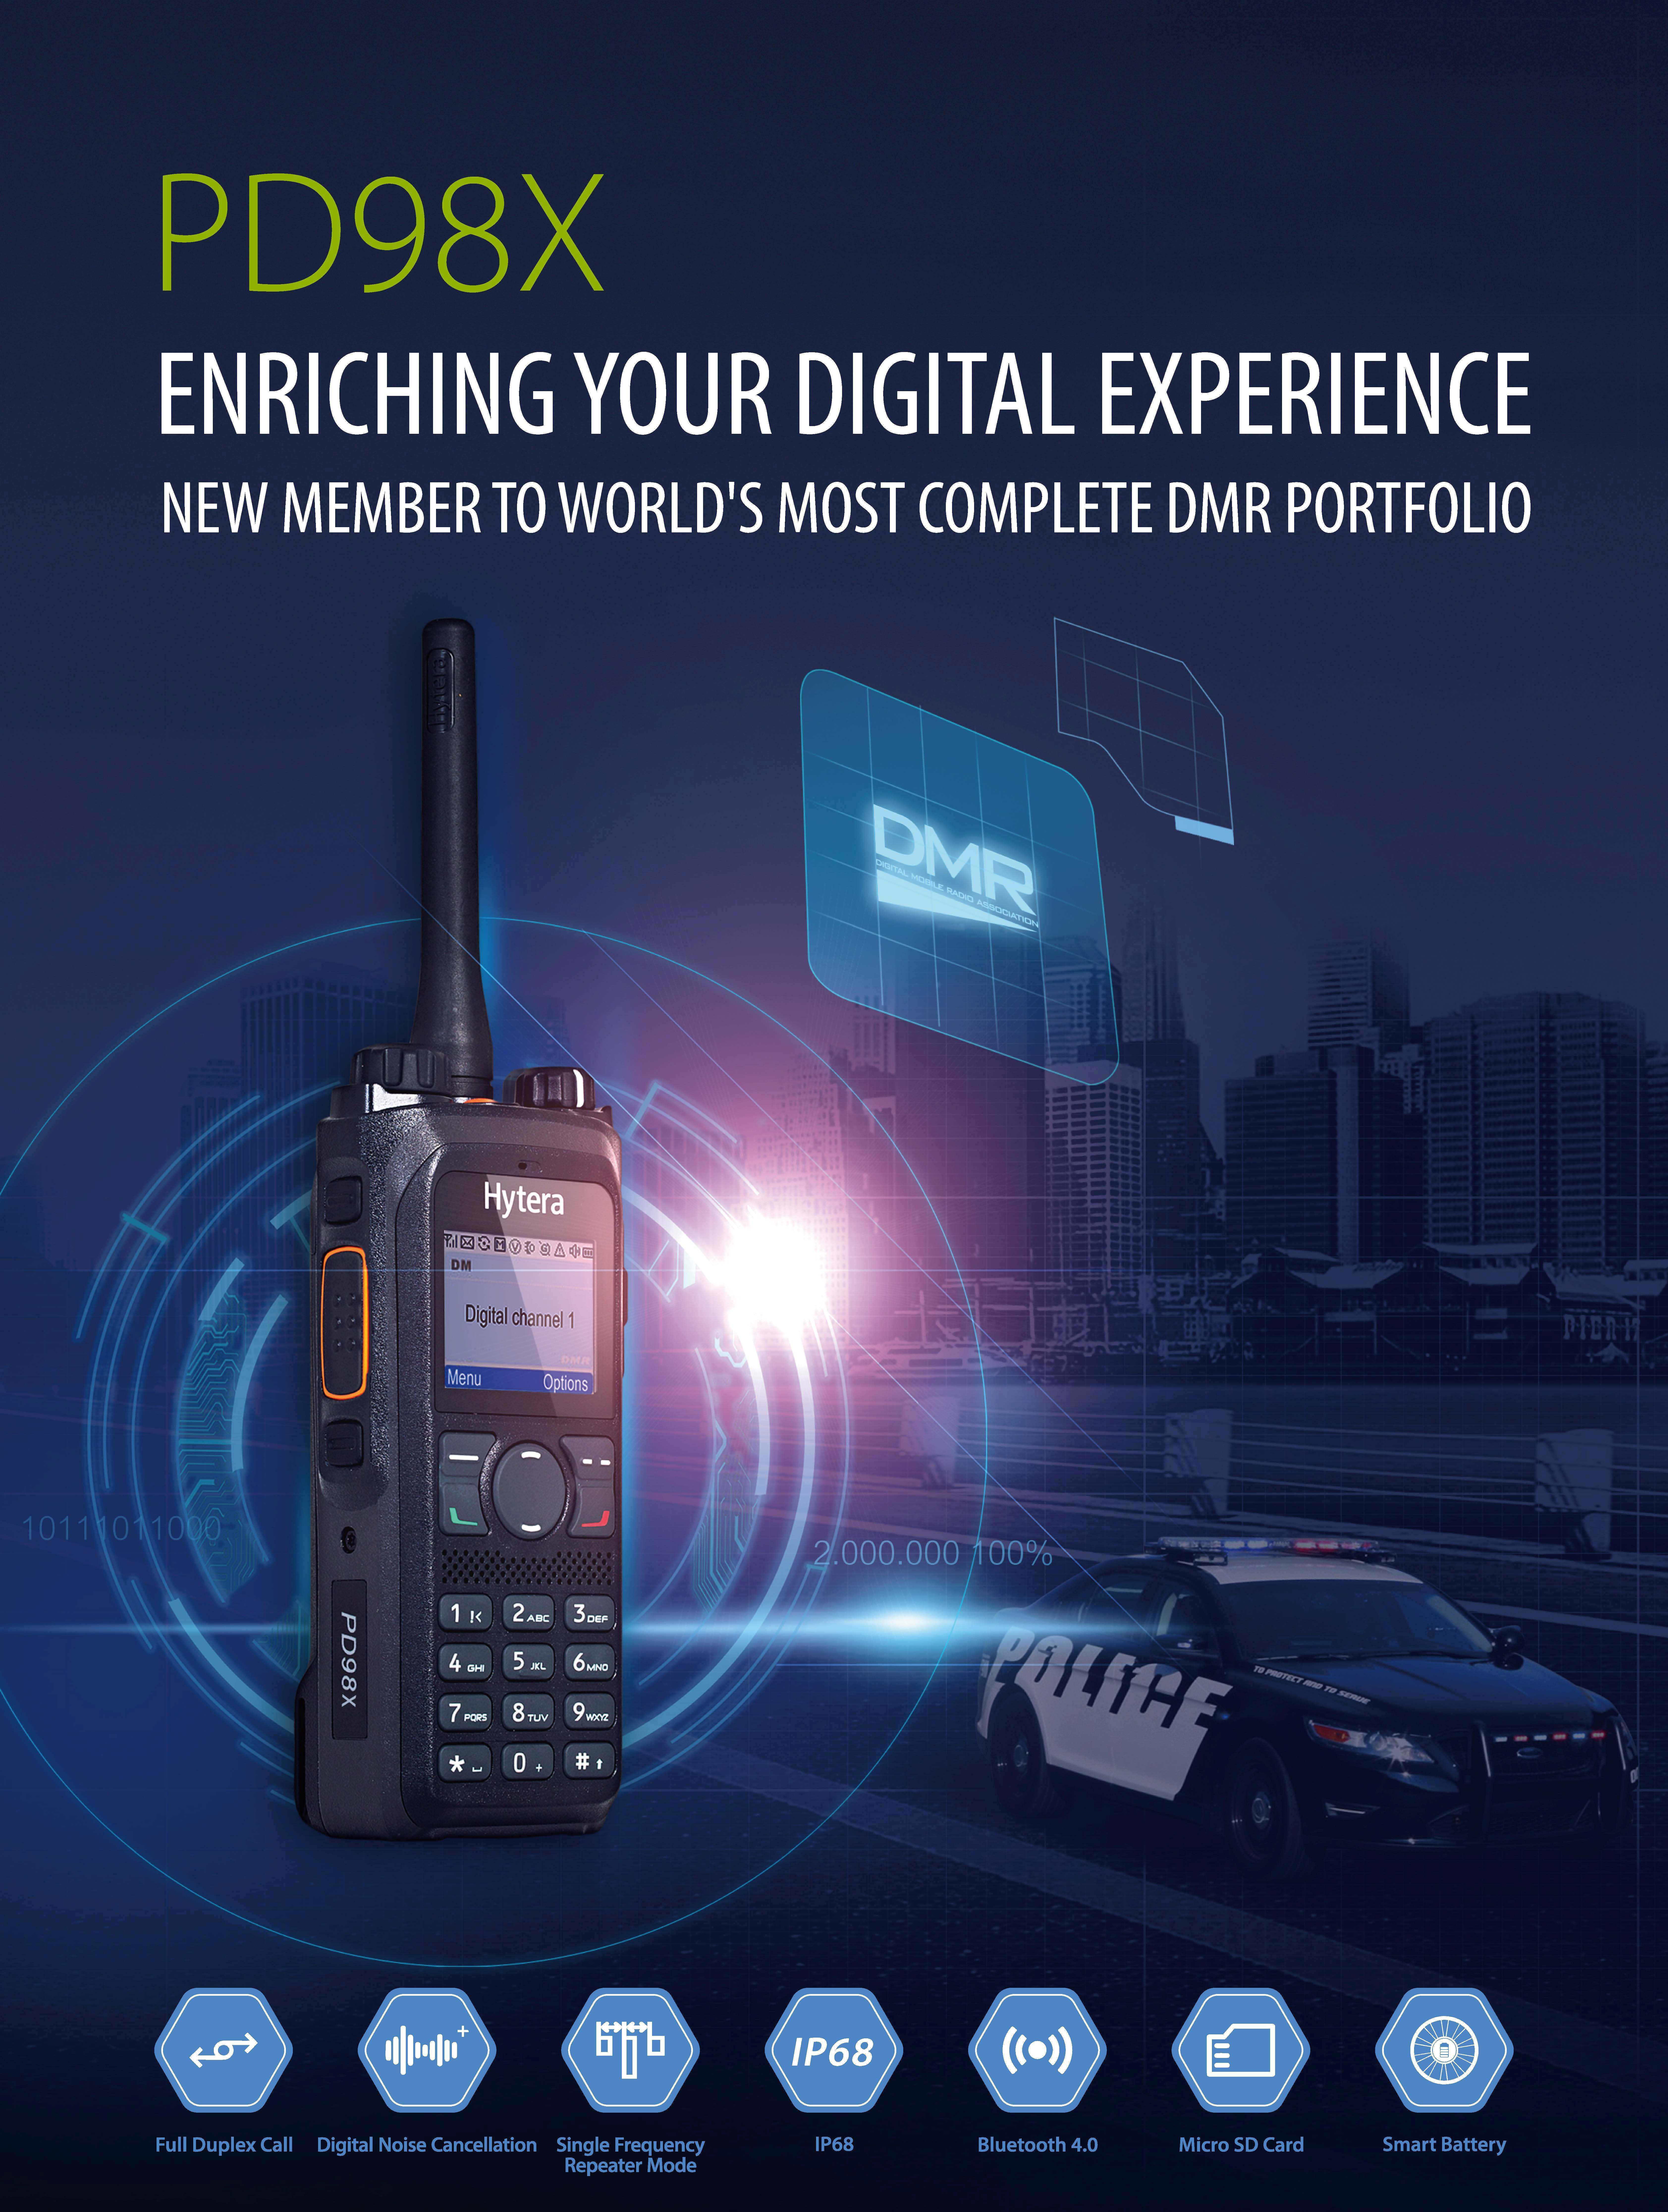 Hytera Launches Latest DMR Handheld Radio PD98X   Business Wire on